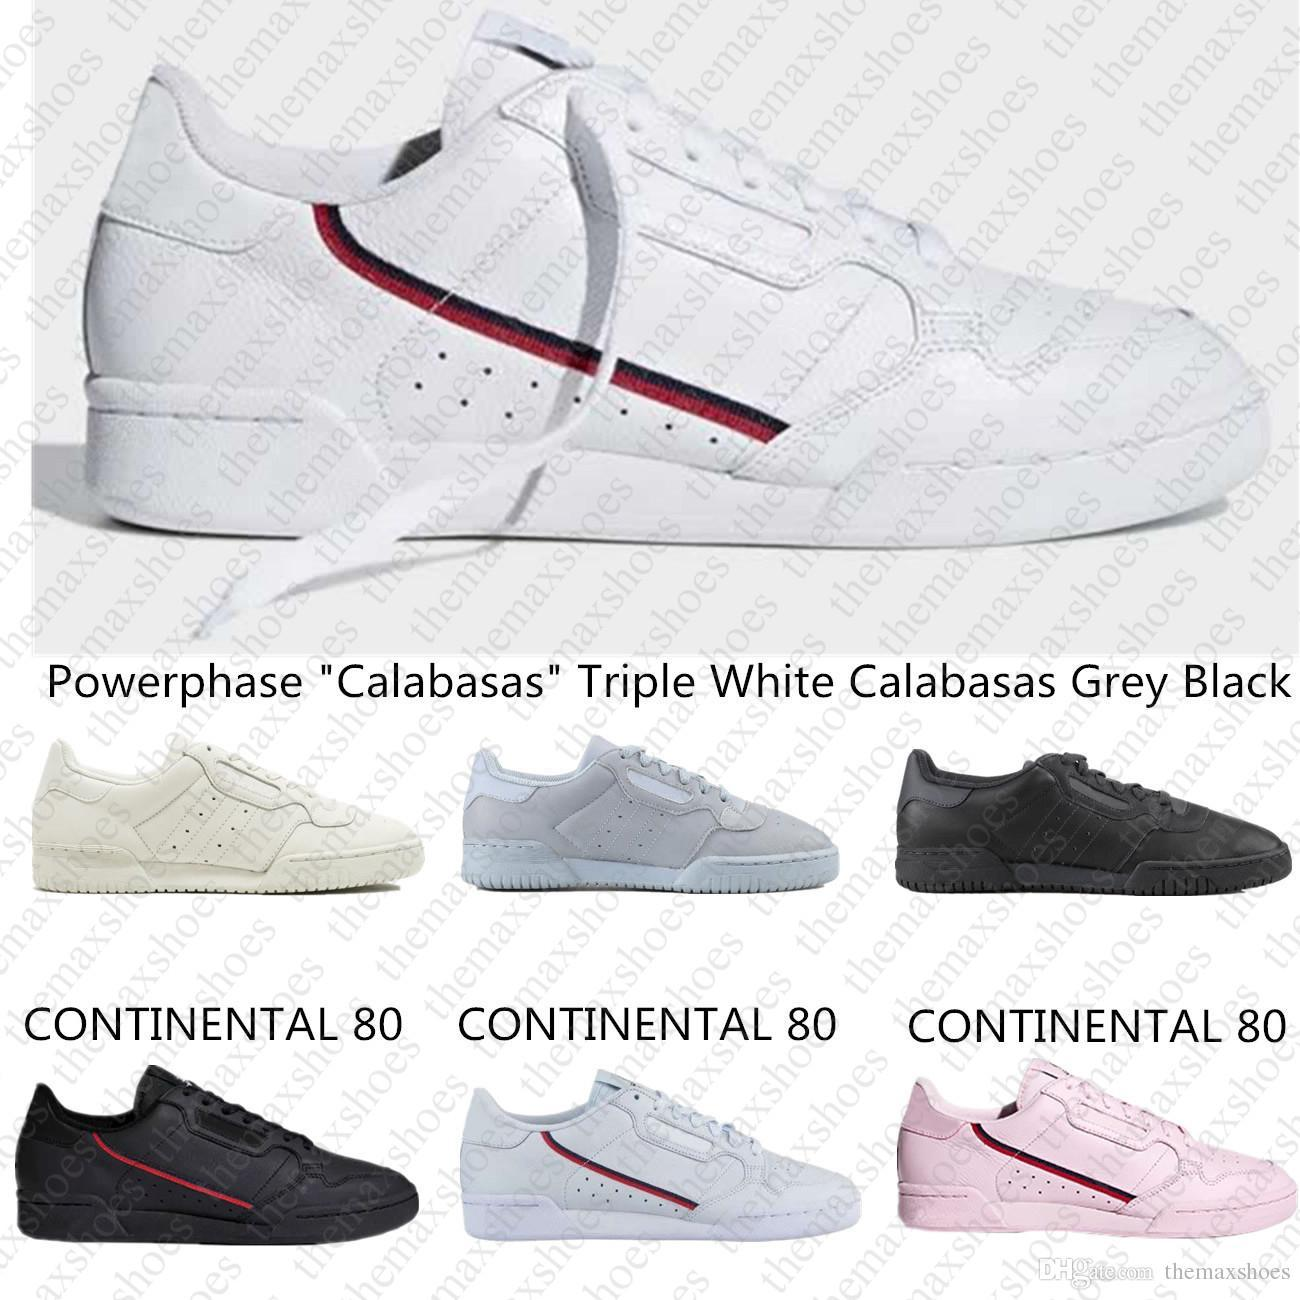 2019 Powerphase Calabasas Continental 80 Rascal Leather Kanye West Casual Shoes Grey OG Core Black Triple White Men Women Fashion Shoe 36-44